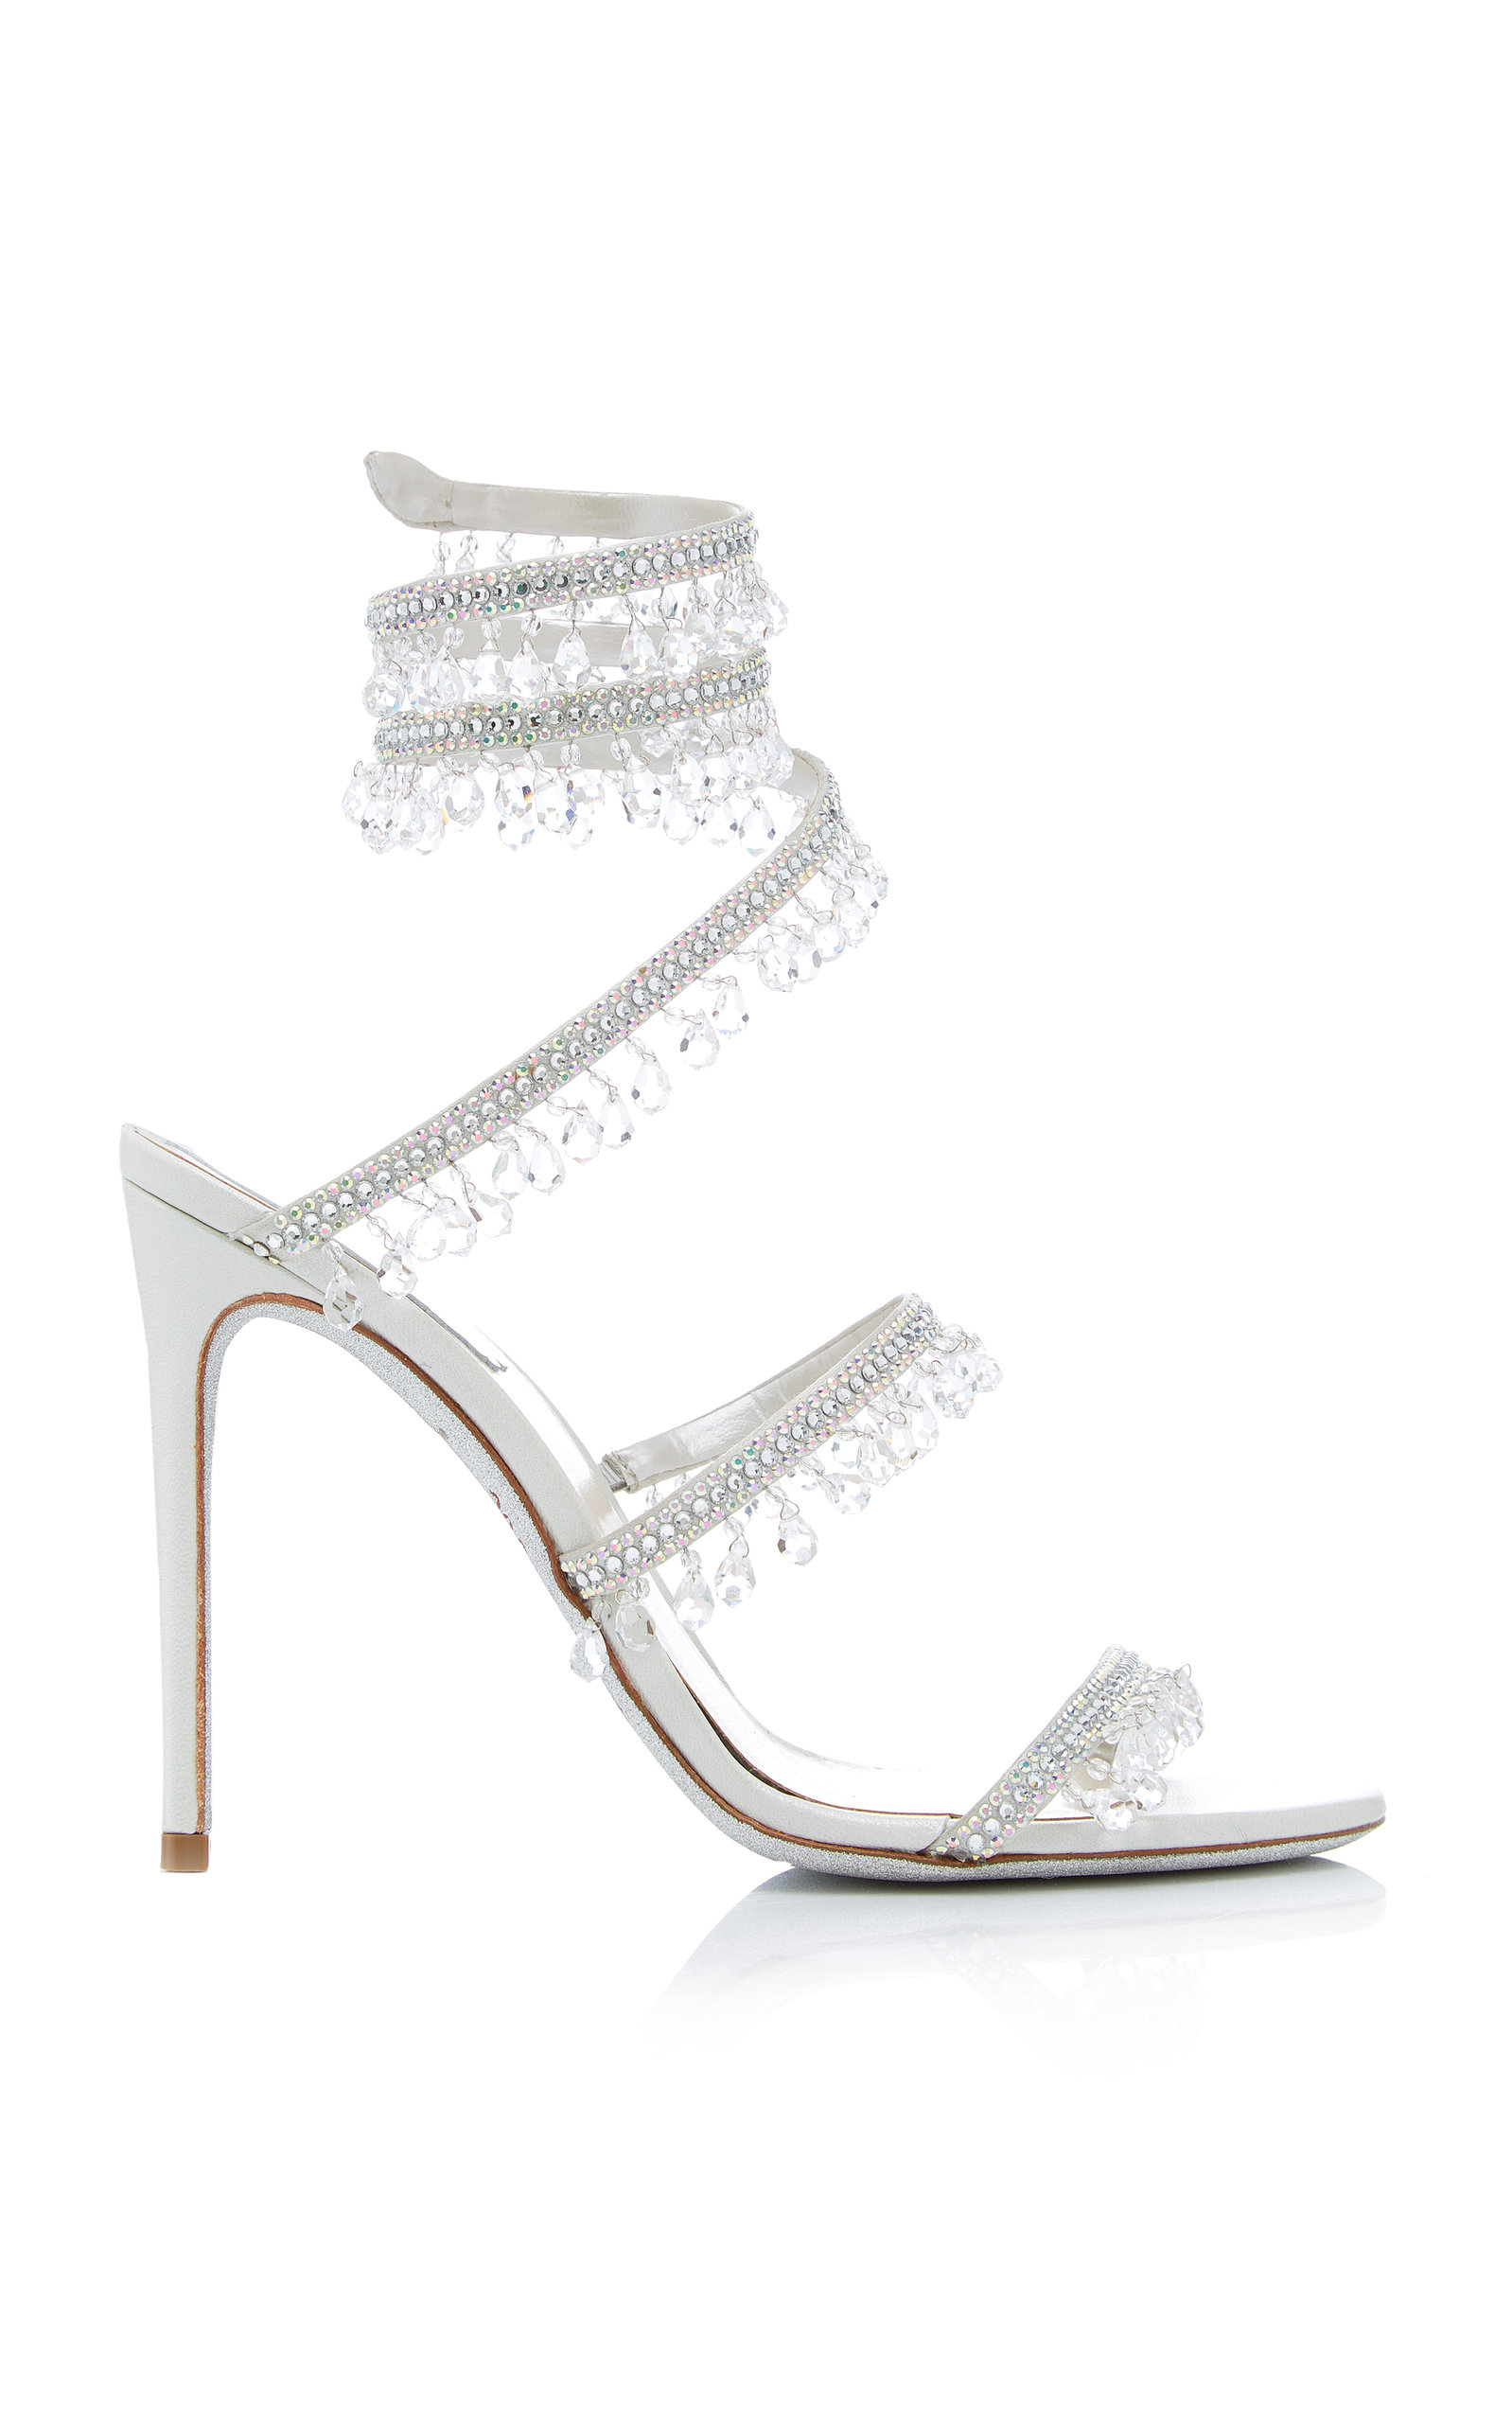 a031dac5fc2 Exclusive Crystal-Embellished Sandal